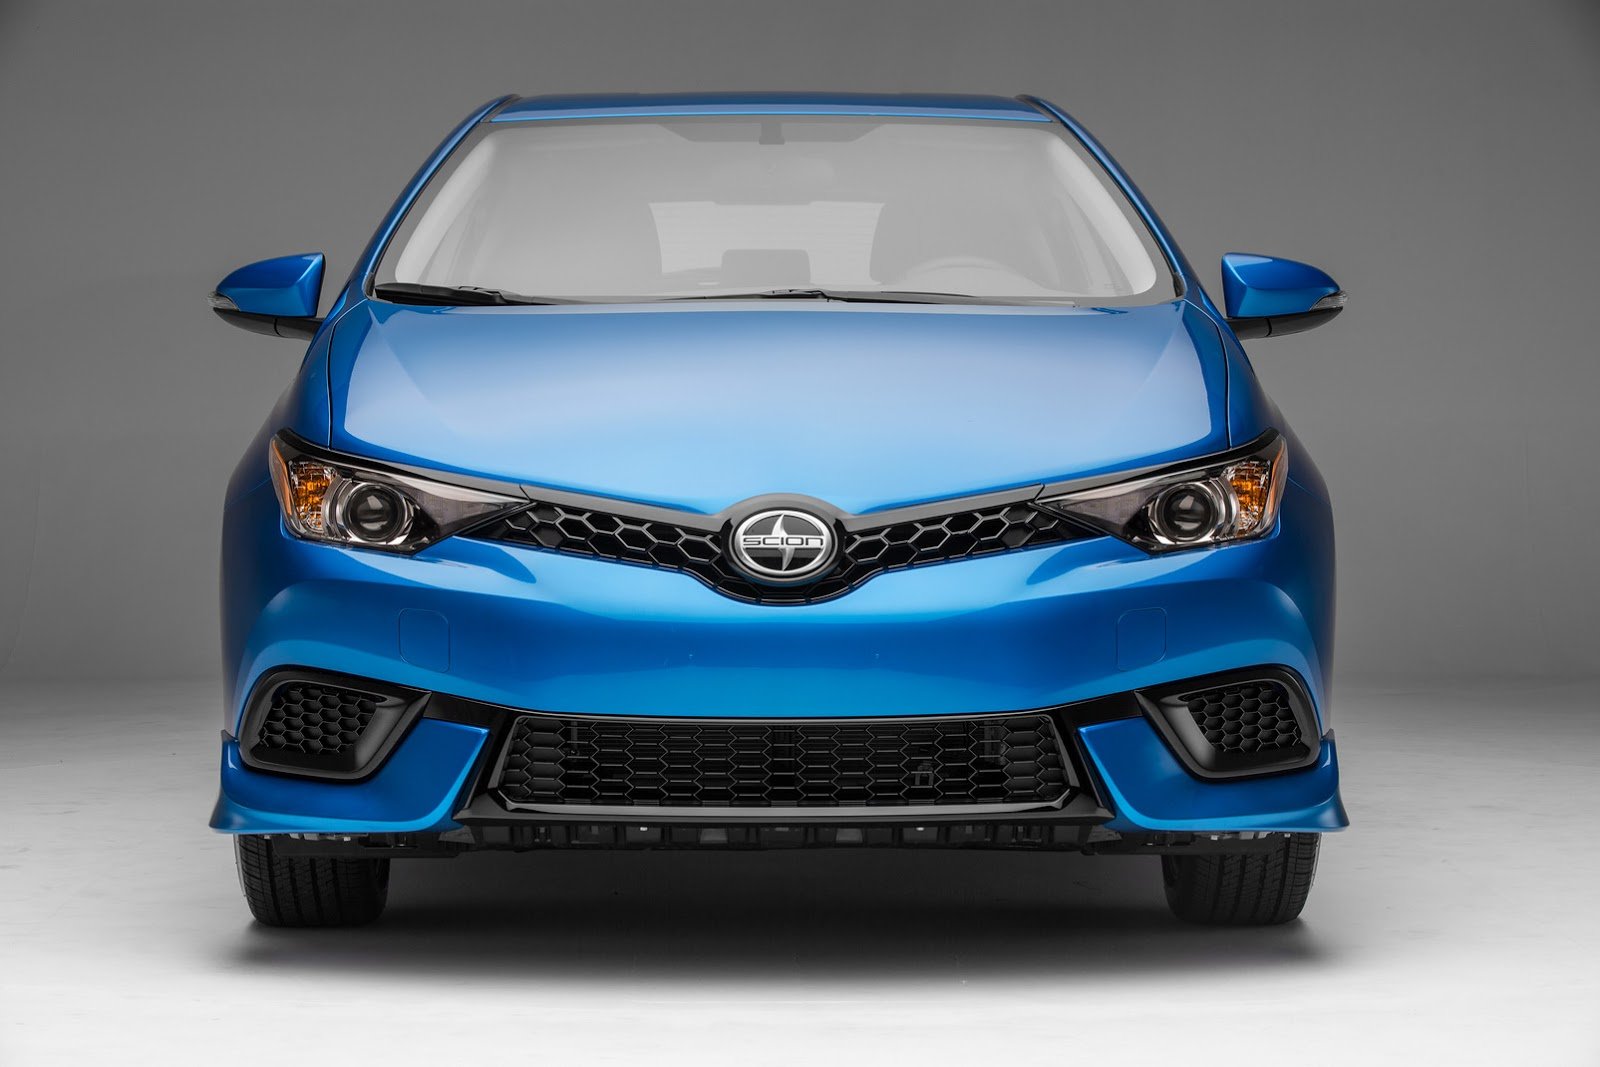 2016 Scion iM Is A Toyota Auris In Disguise For U.S. Priced Under $20k